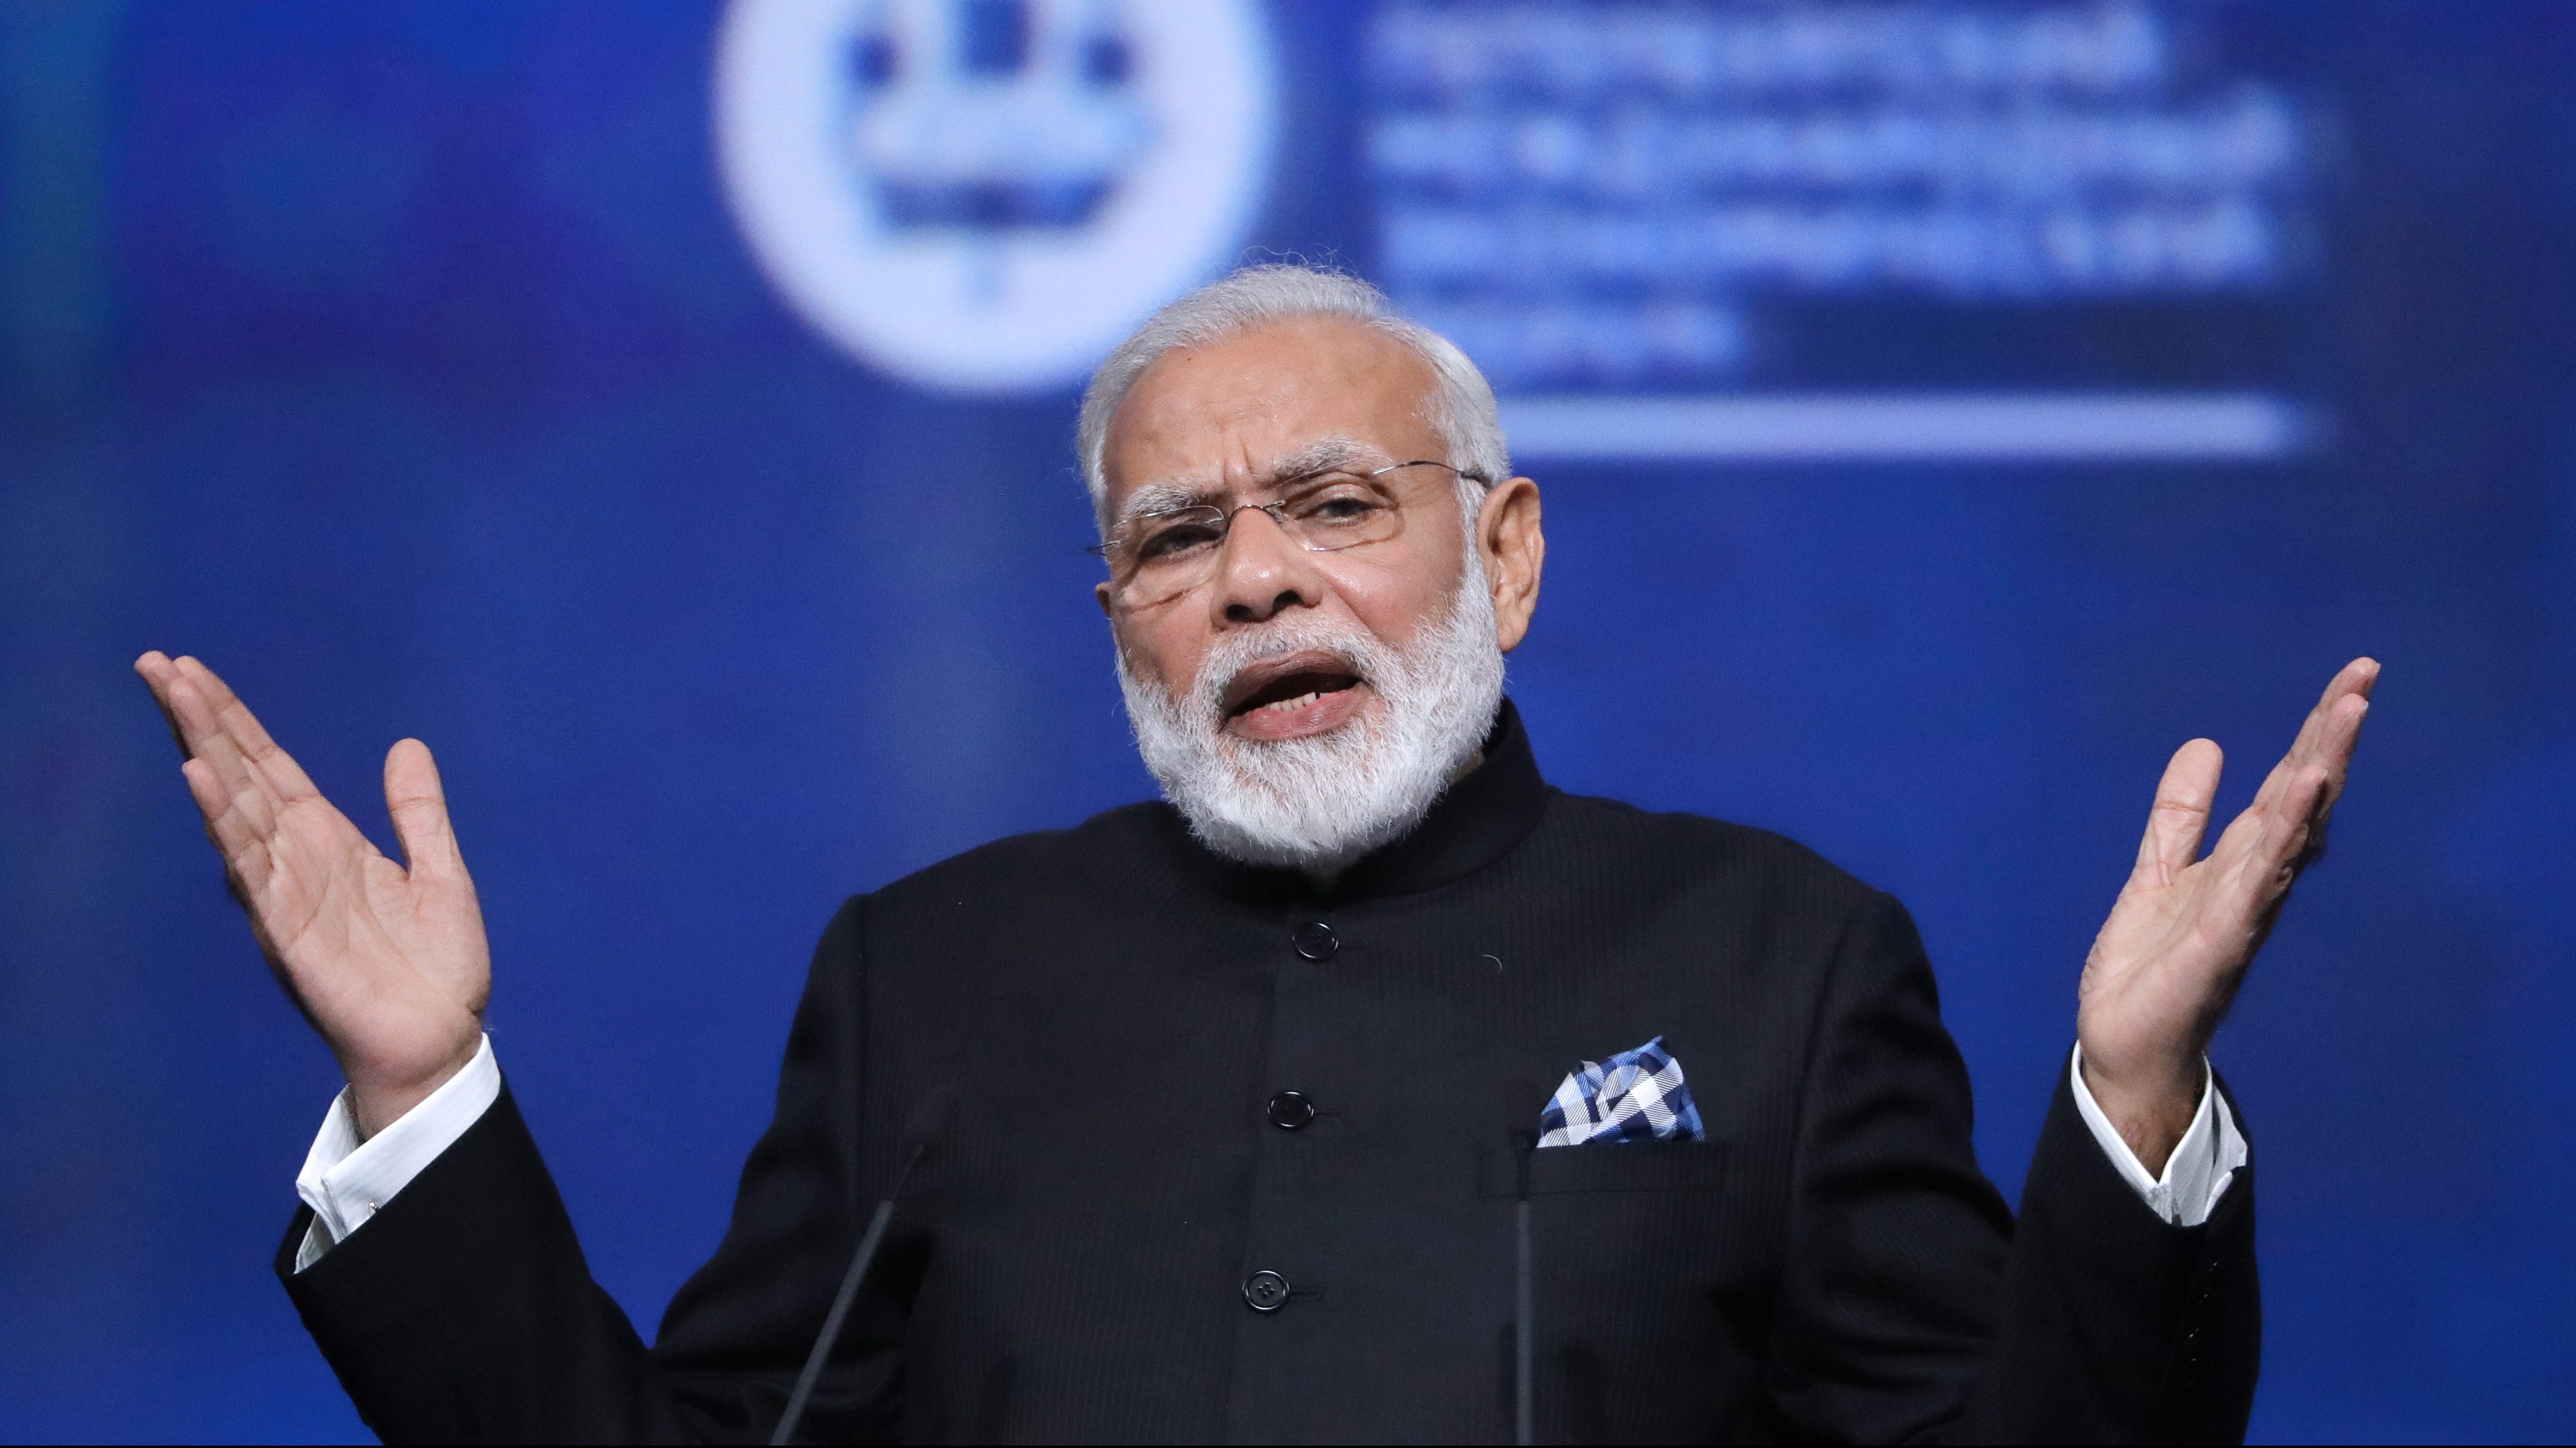 FILE PHOTO: Indian Prime Minister Narendra Modi gestures during a session of the St. Petersburg International Economic Forum (SPIEF), Russia, June 2, 2017.  - RTS18L9O